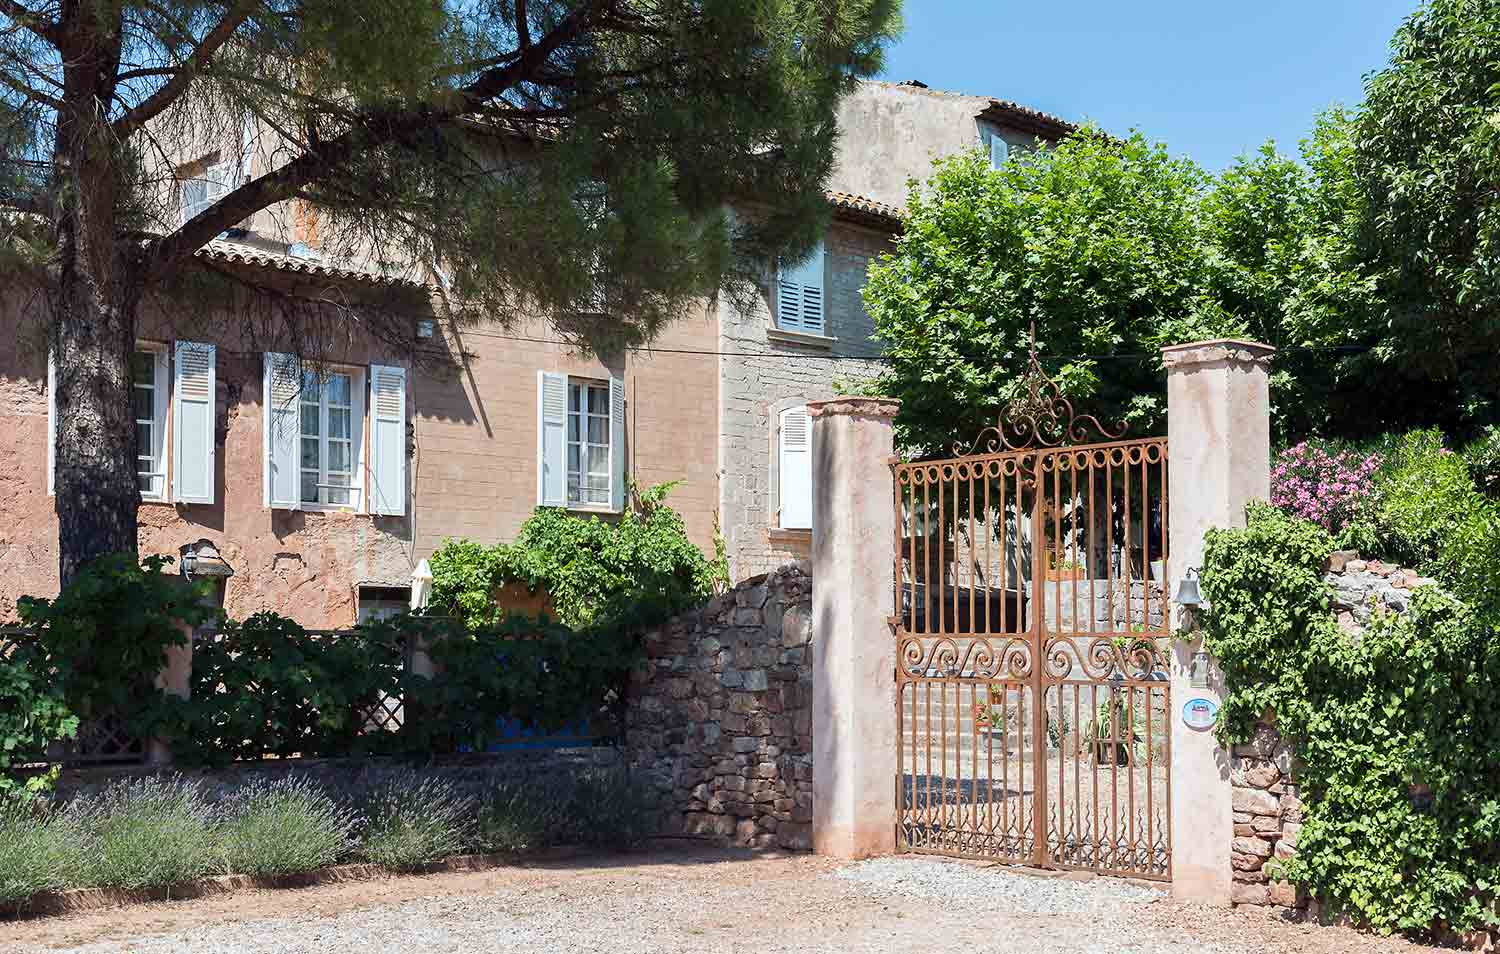 Chambres d 39 hotes var charme piscine chauff e en provence - Chambre d hote de charme provence ...